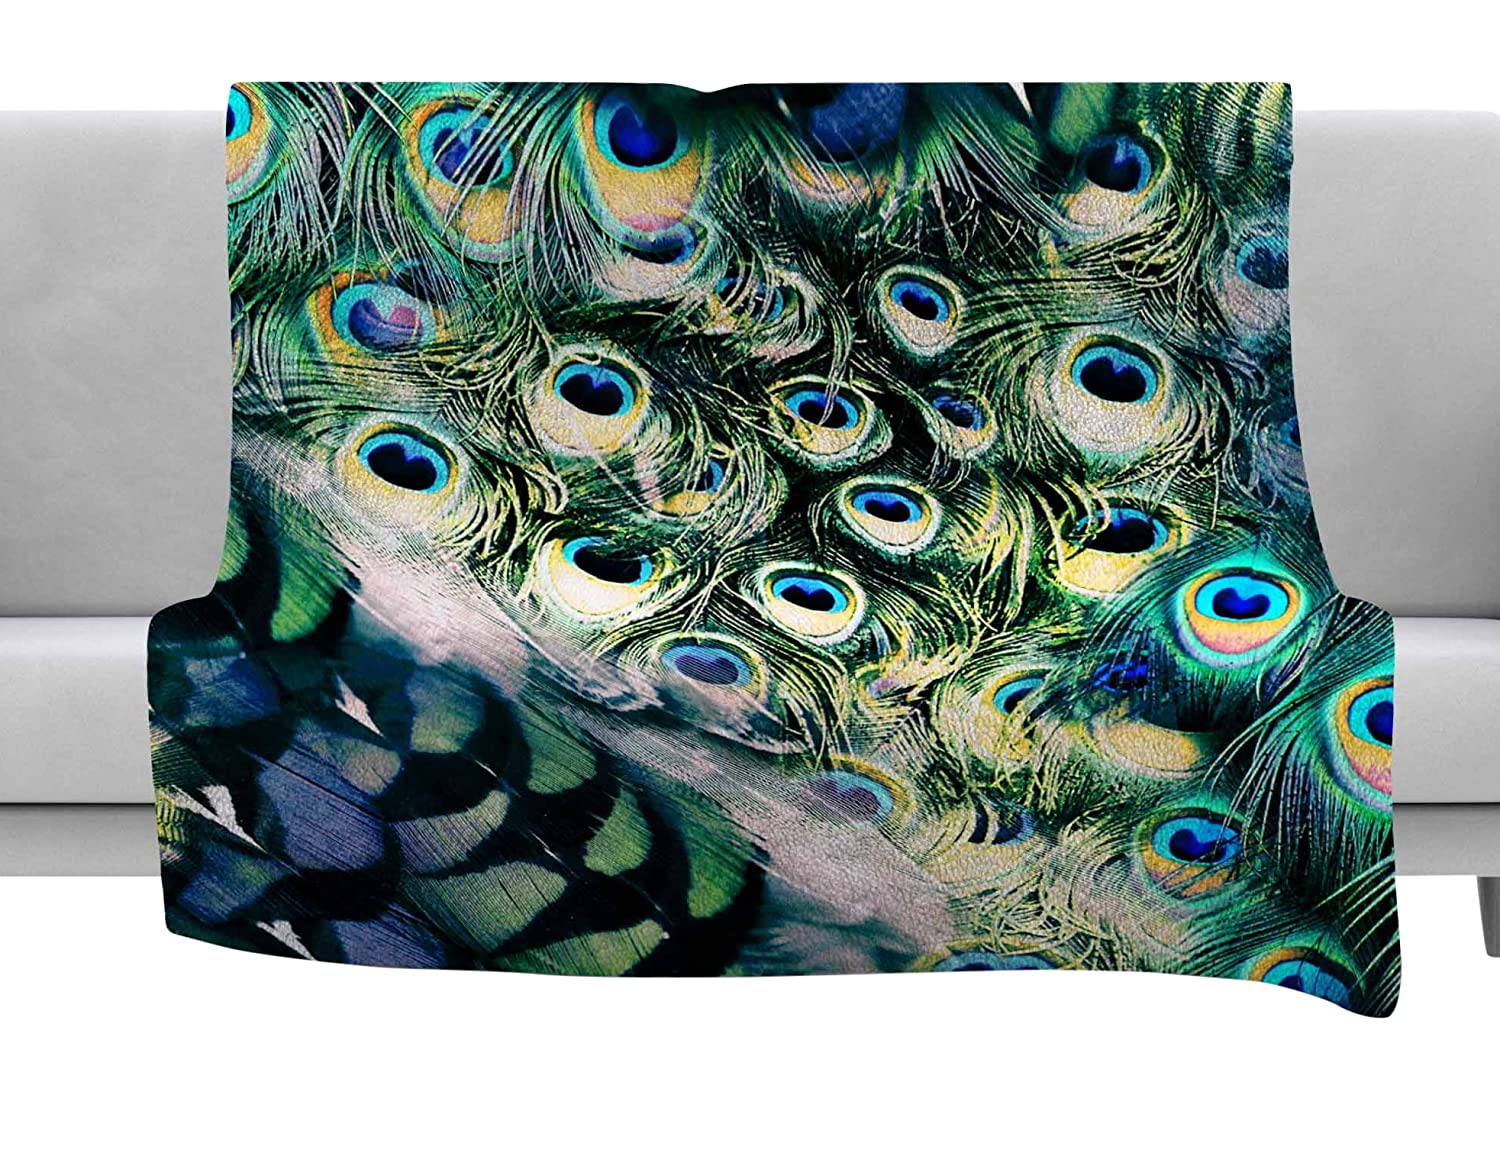 Kess InHouse Victoria Krupp Feather Mix Blue Teal Digital Throw 80 x 60 Fleece Blanket